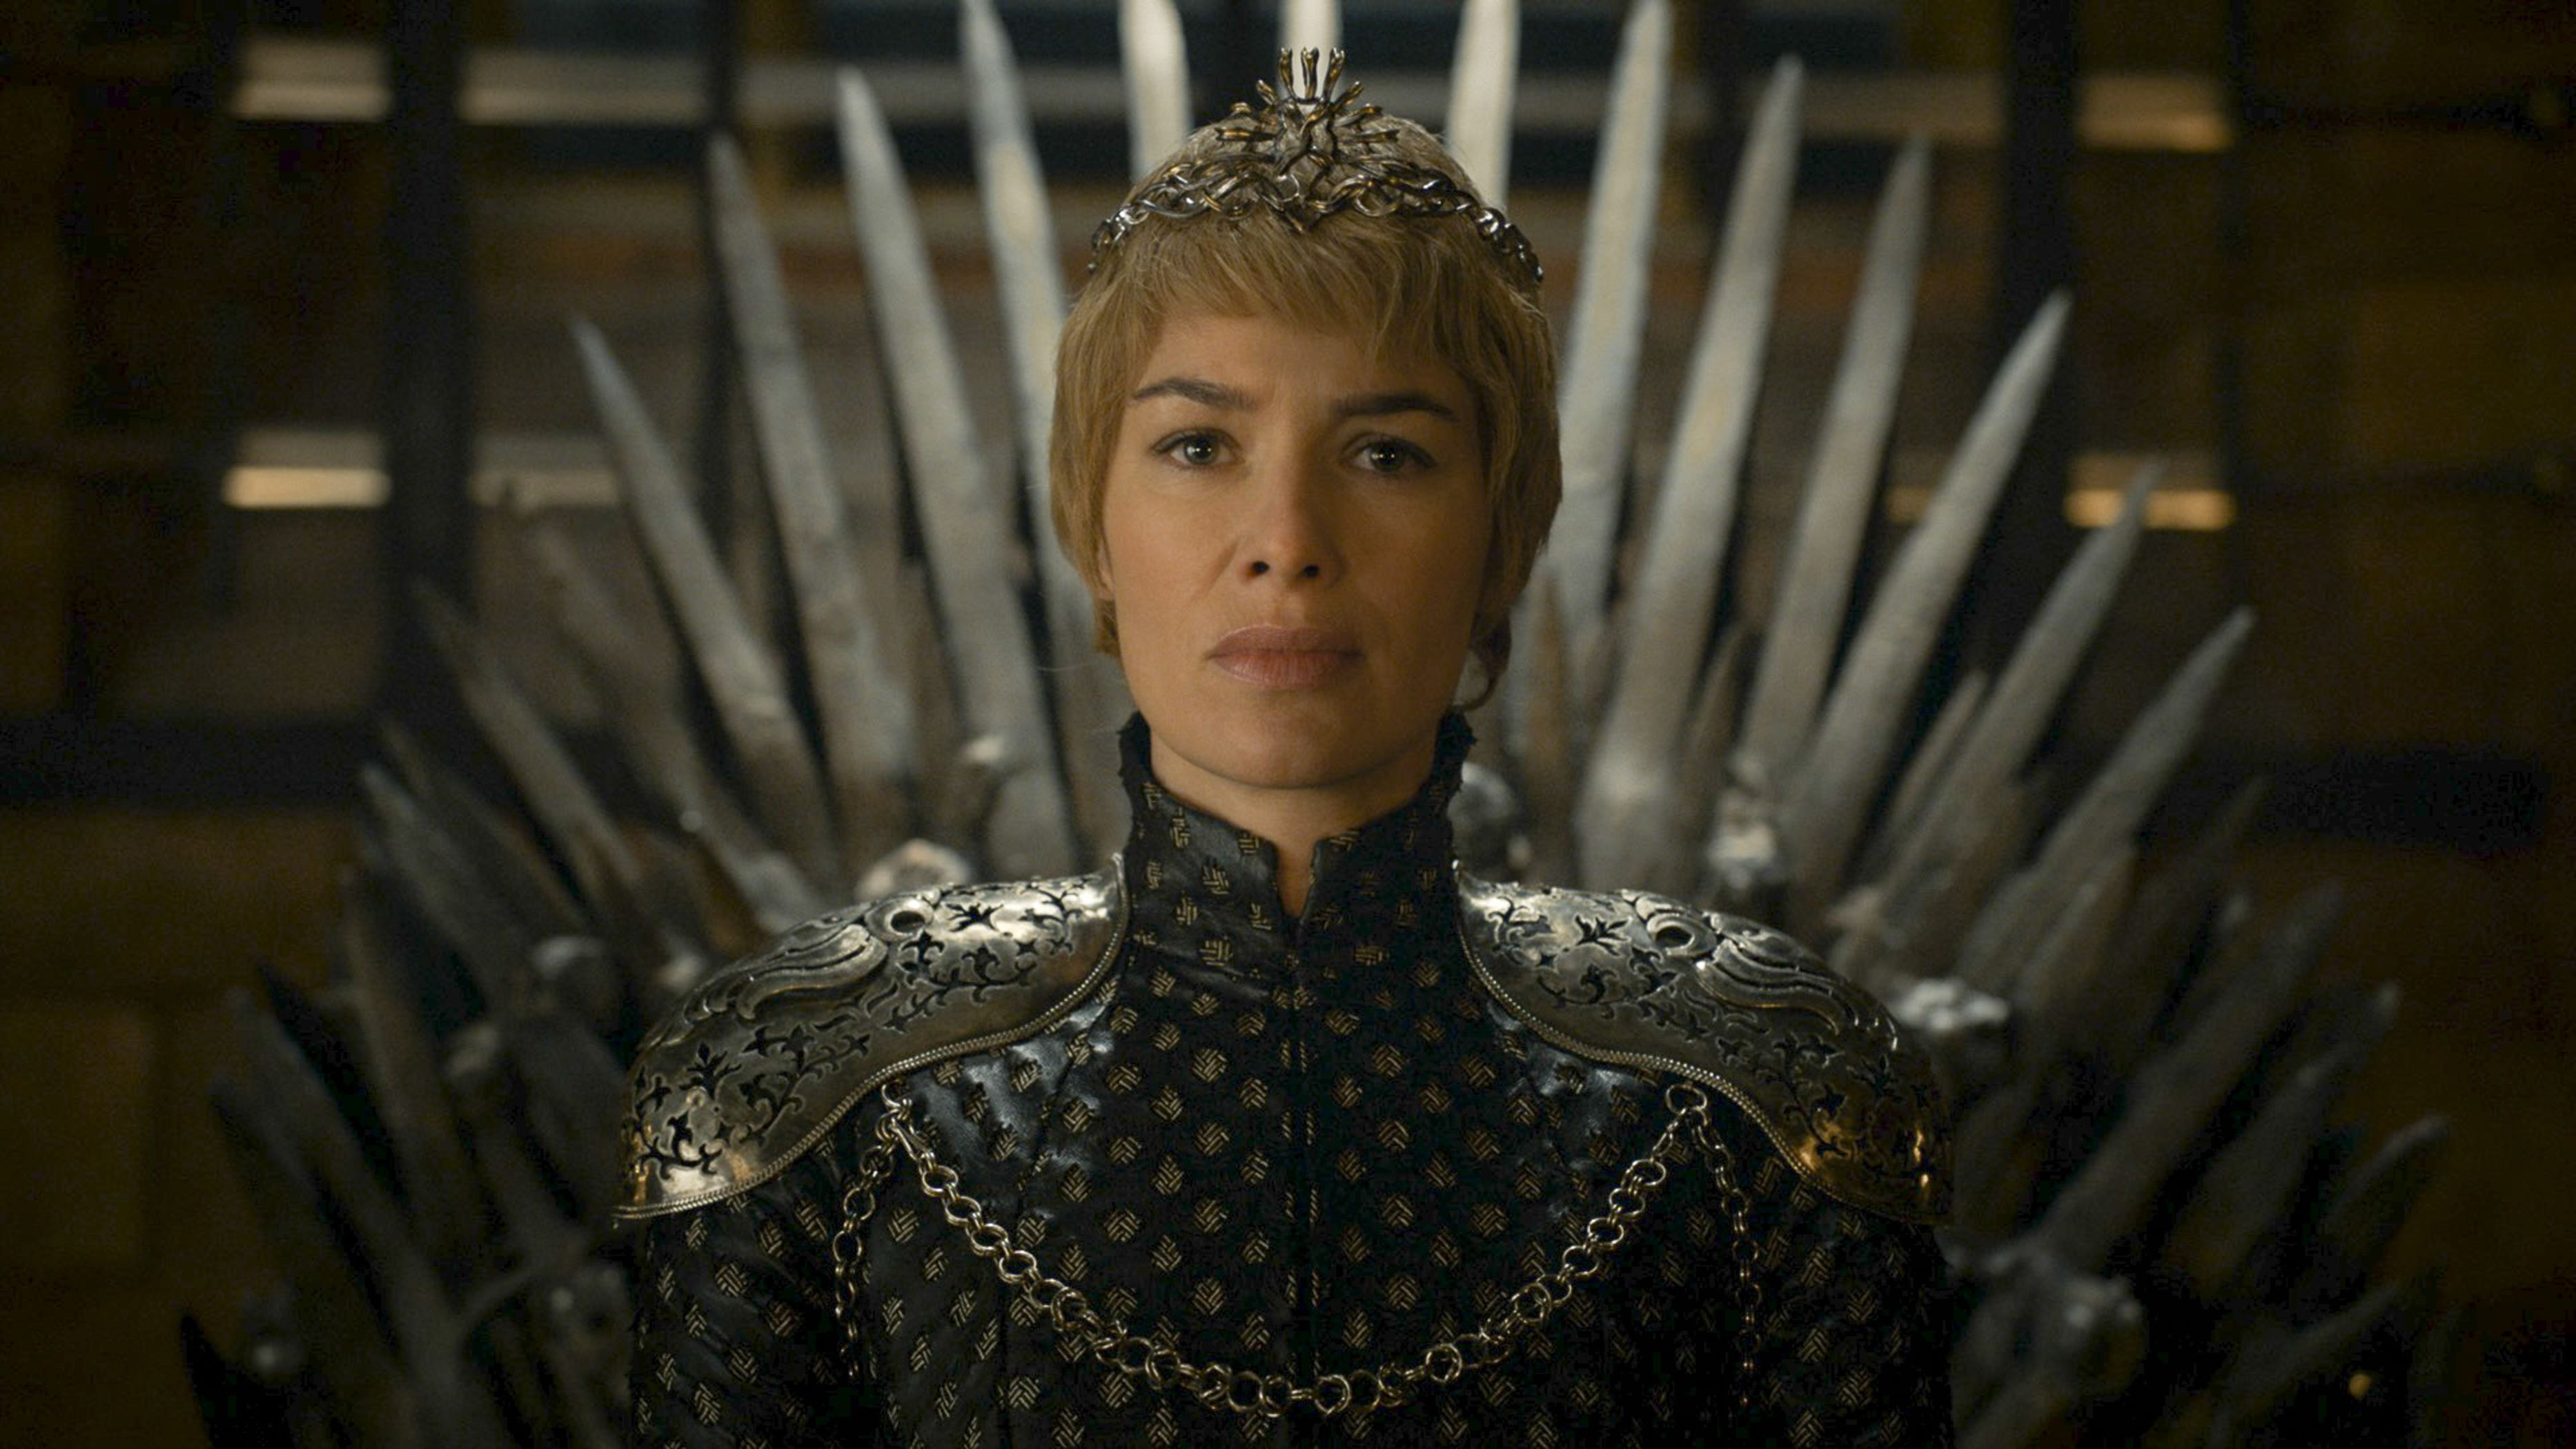 How to watch 'Game of Thrones' without an internet connection